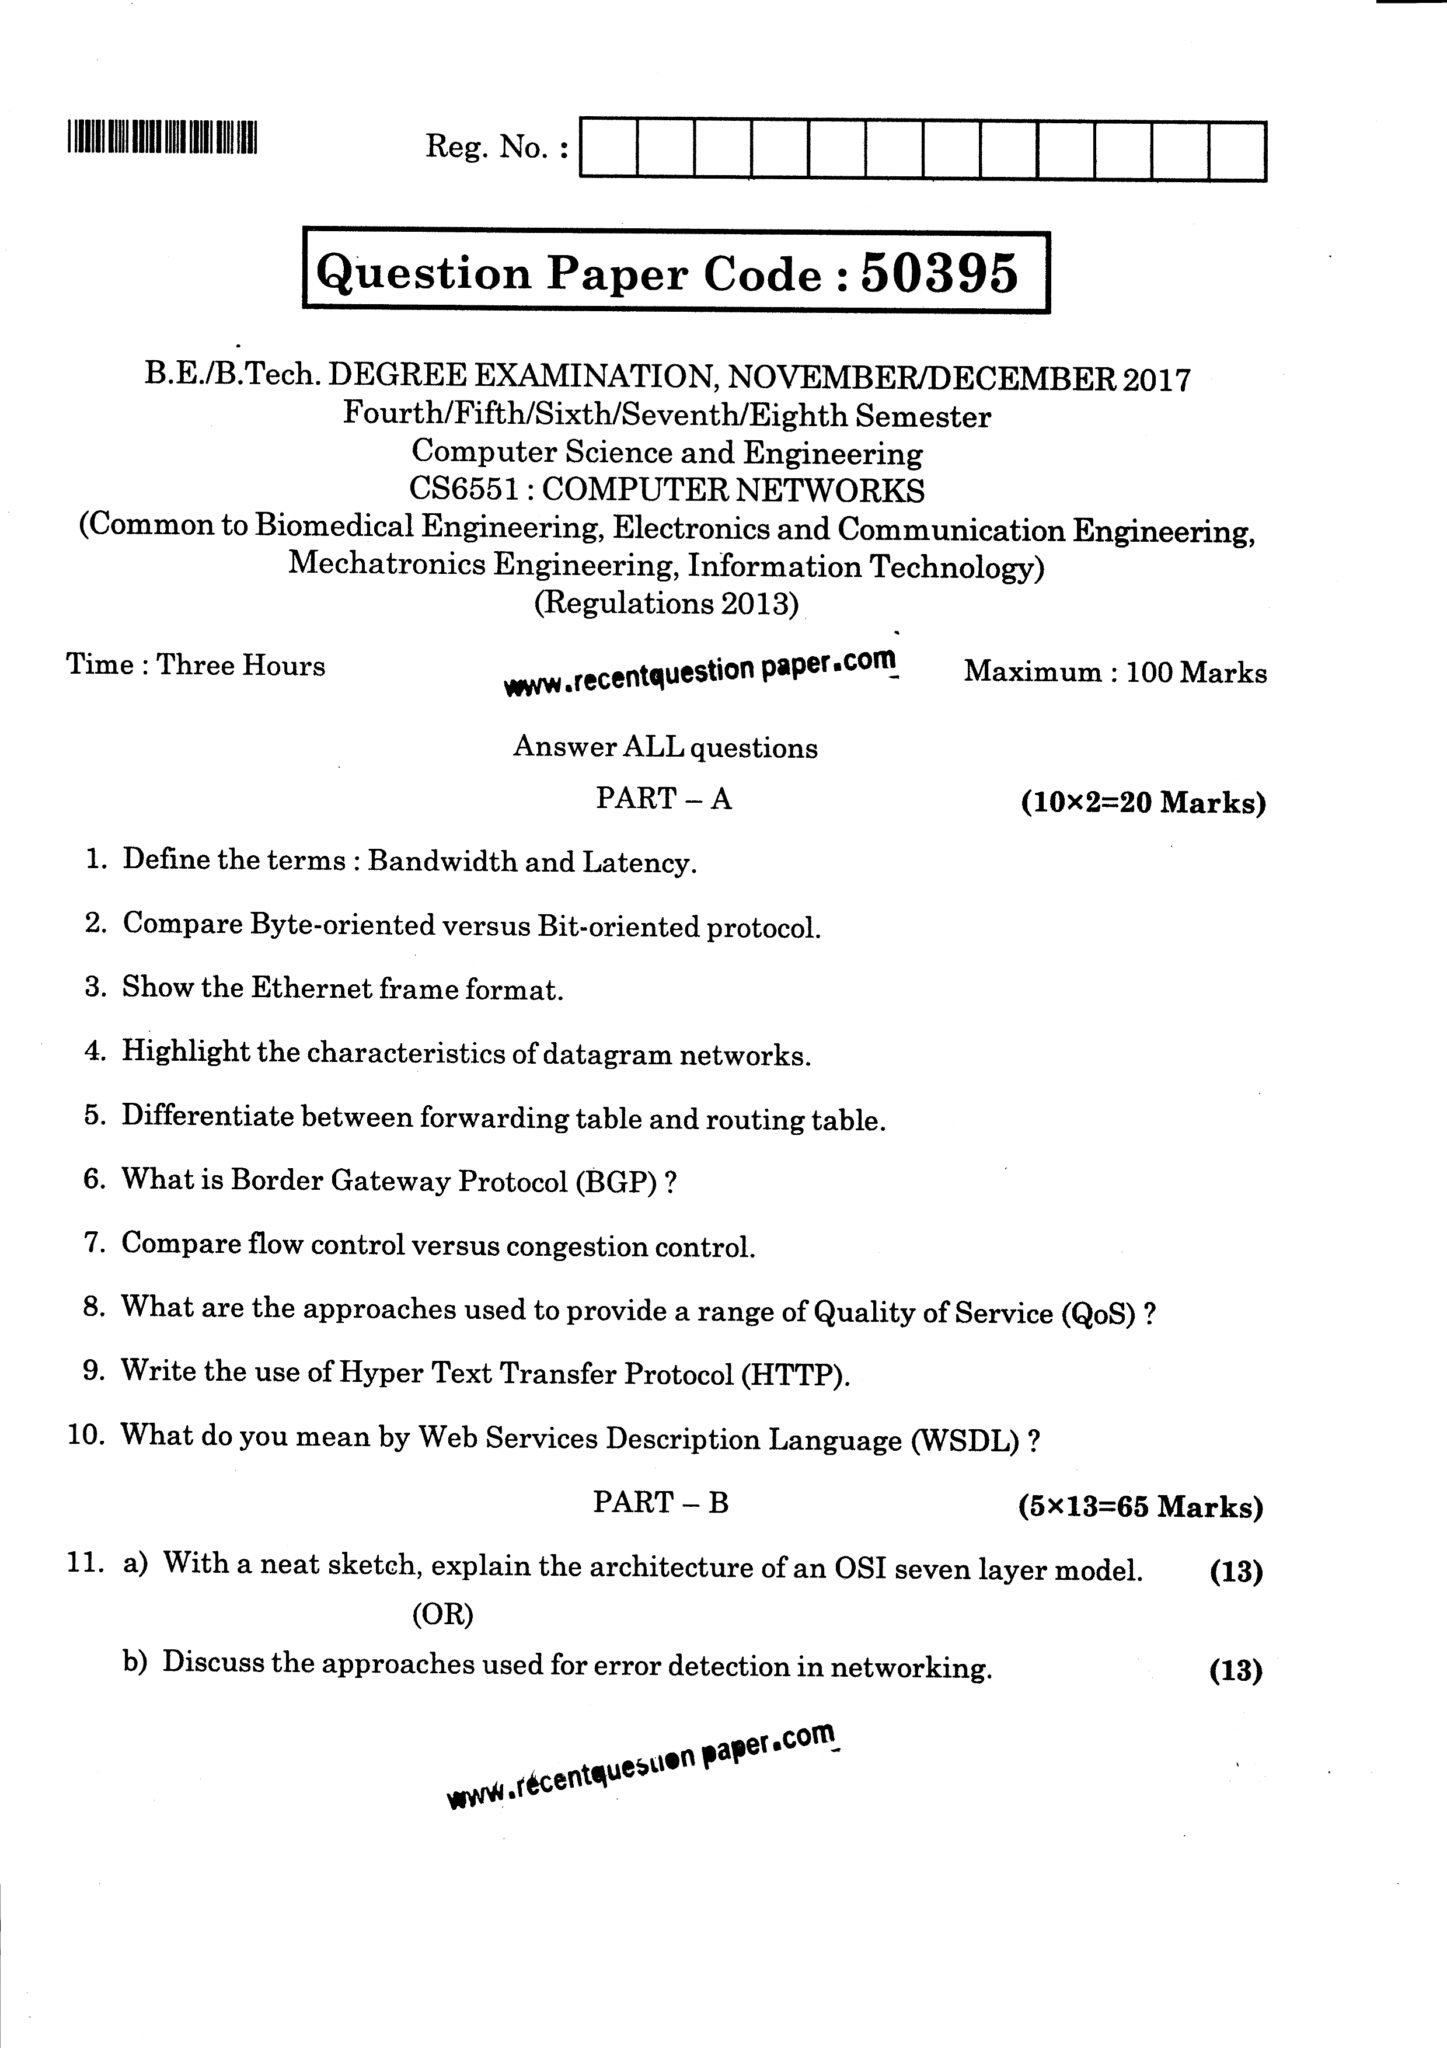 CS6551 Computer Networks Question Paper Nov/Dec 2017